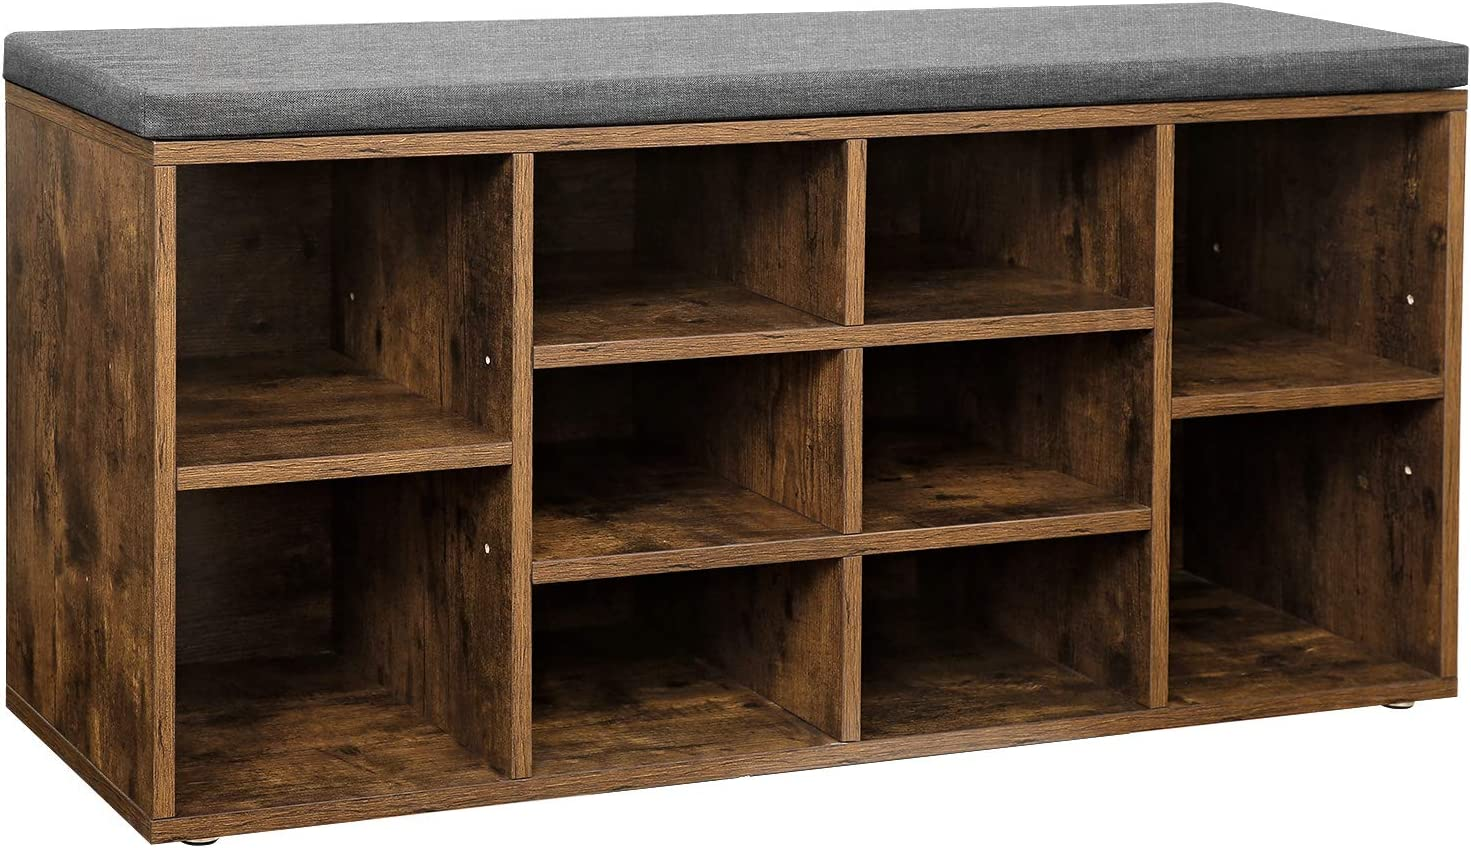 VASAGLE Shoe Bench, Shoe Shelf, Shoe Rack, Storage Cabinet, 10 Compartments, with Cushion, for Entryway, 104 x 30 x 48 cm, Rustic Brown LHS10XB